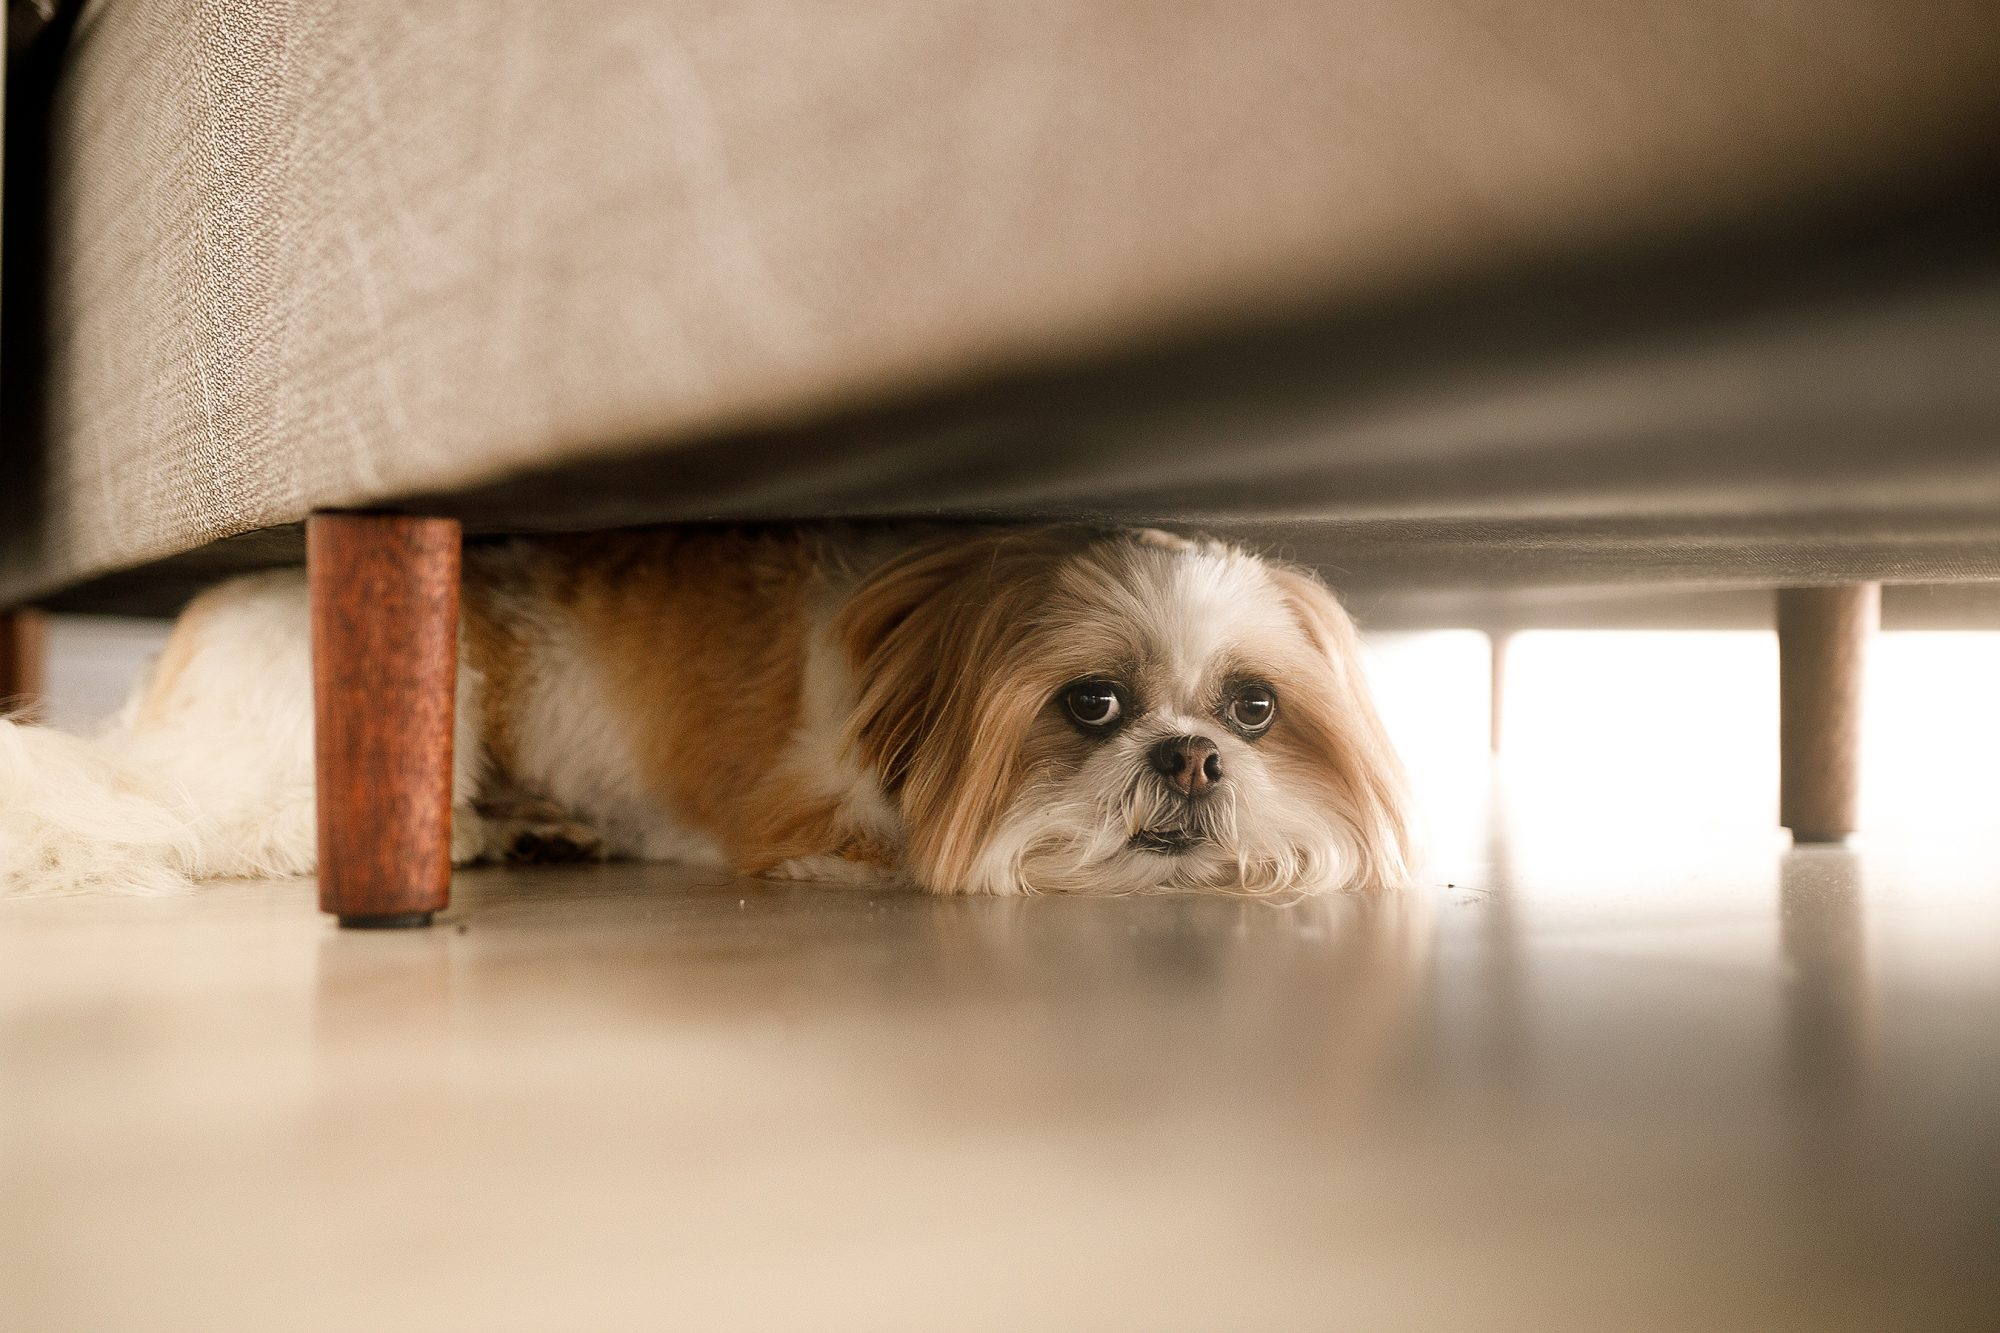 Anxious dog under couch